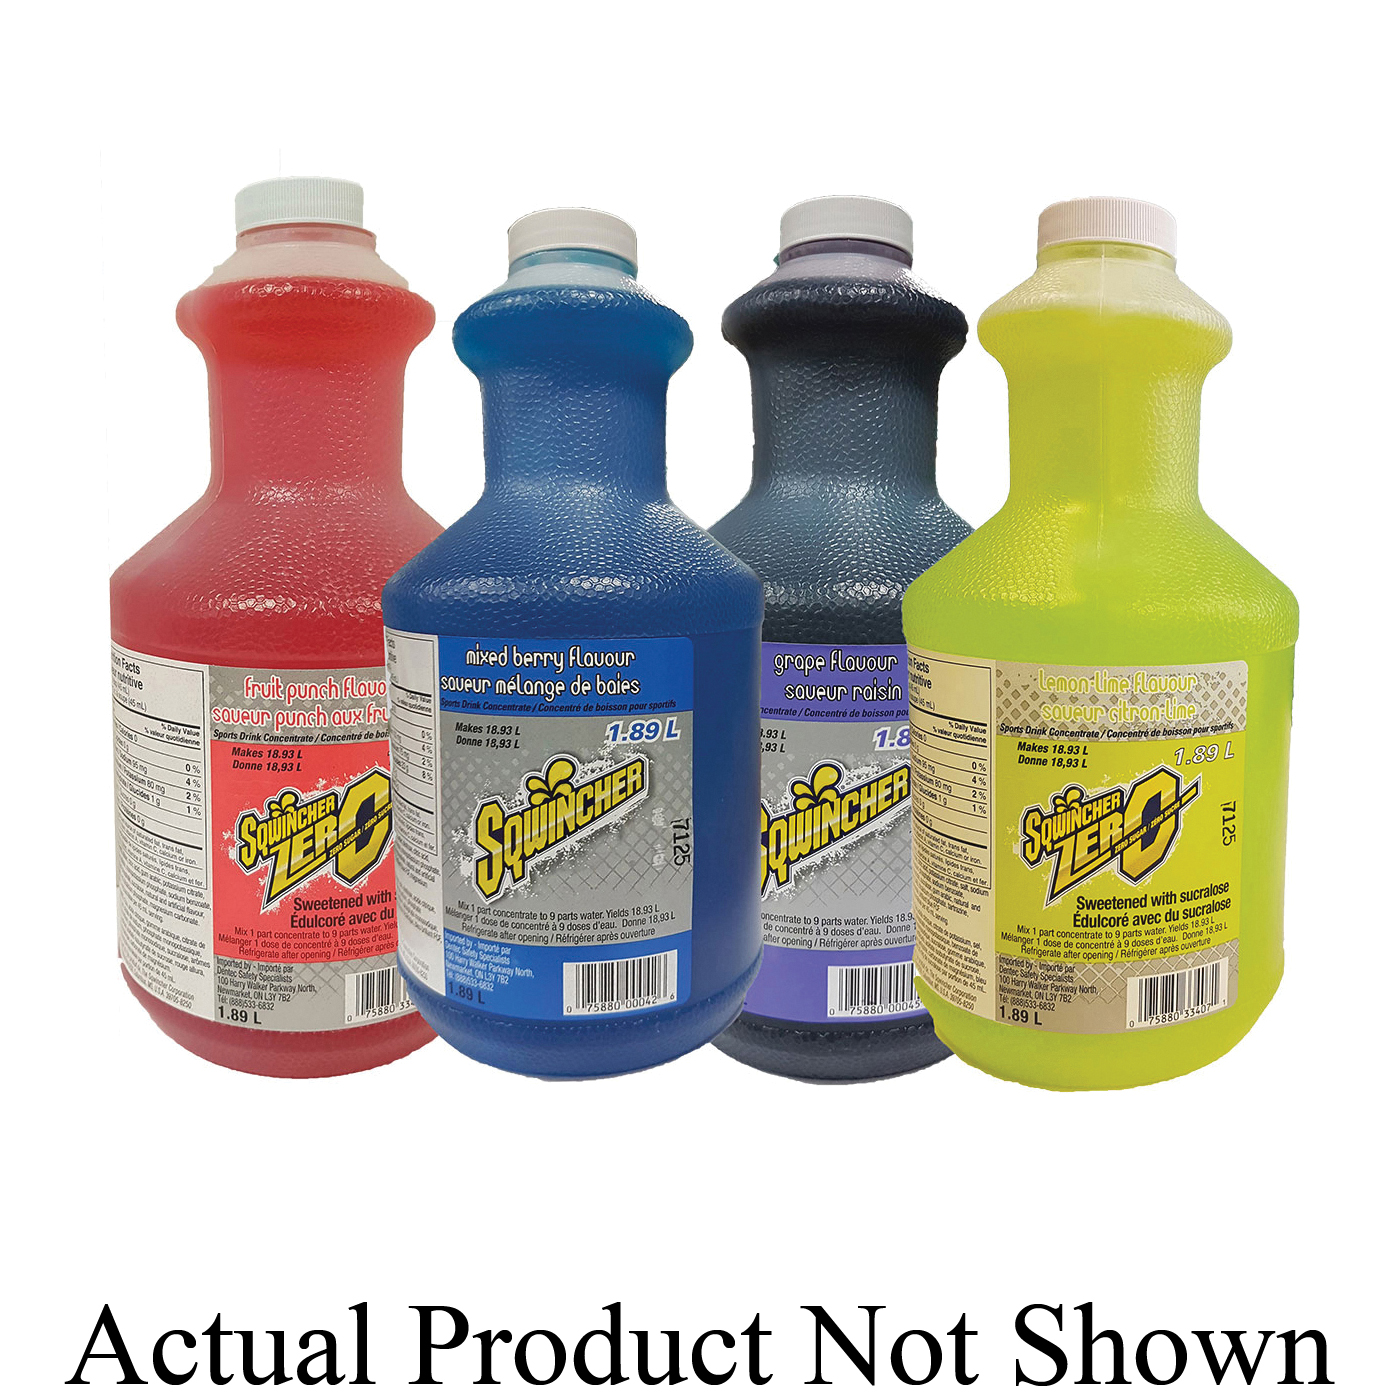 DenTec™ Comfort-Air™ 11020 Sqwincher Standard Formula Sports Drink, 64 oz Bottle, 5 gal Yield, Liquid Form, Lemonade